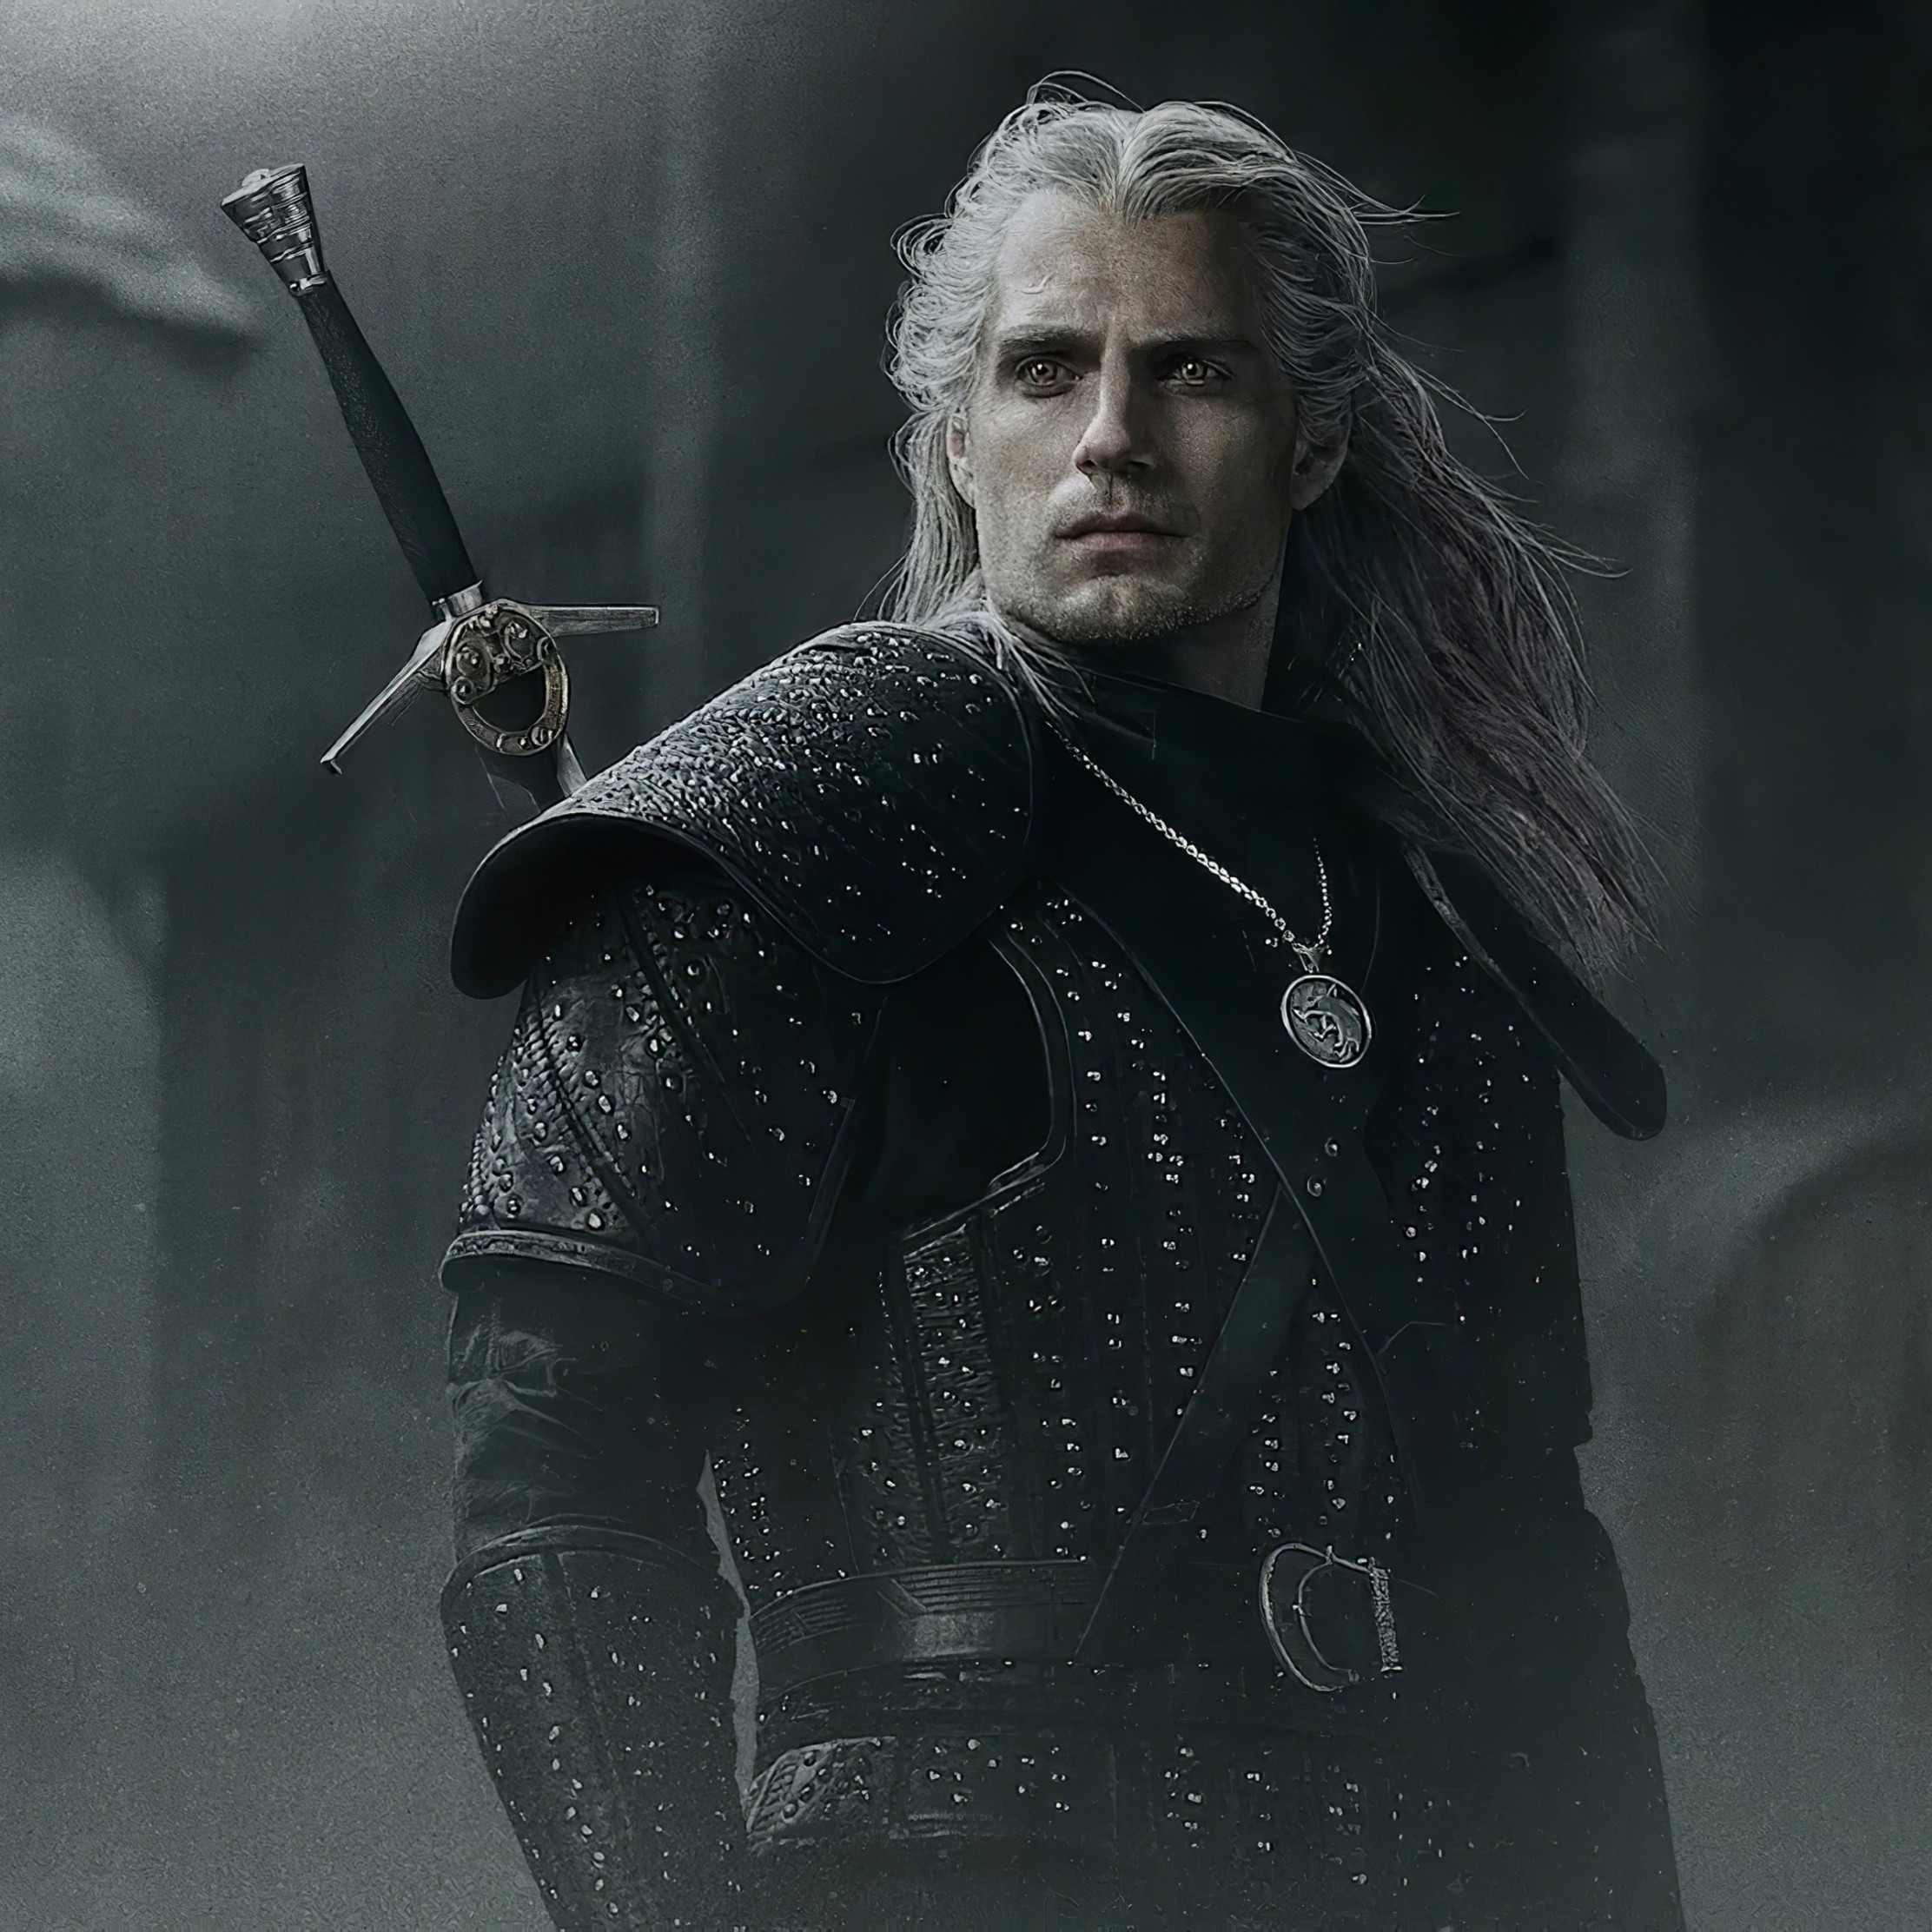 Henry Cavli in The Witcher wallpaper 2224x2224